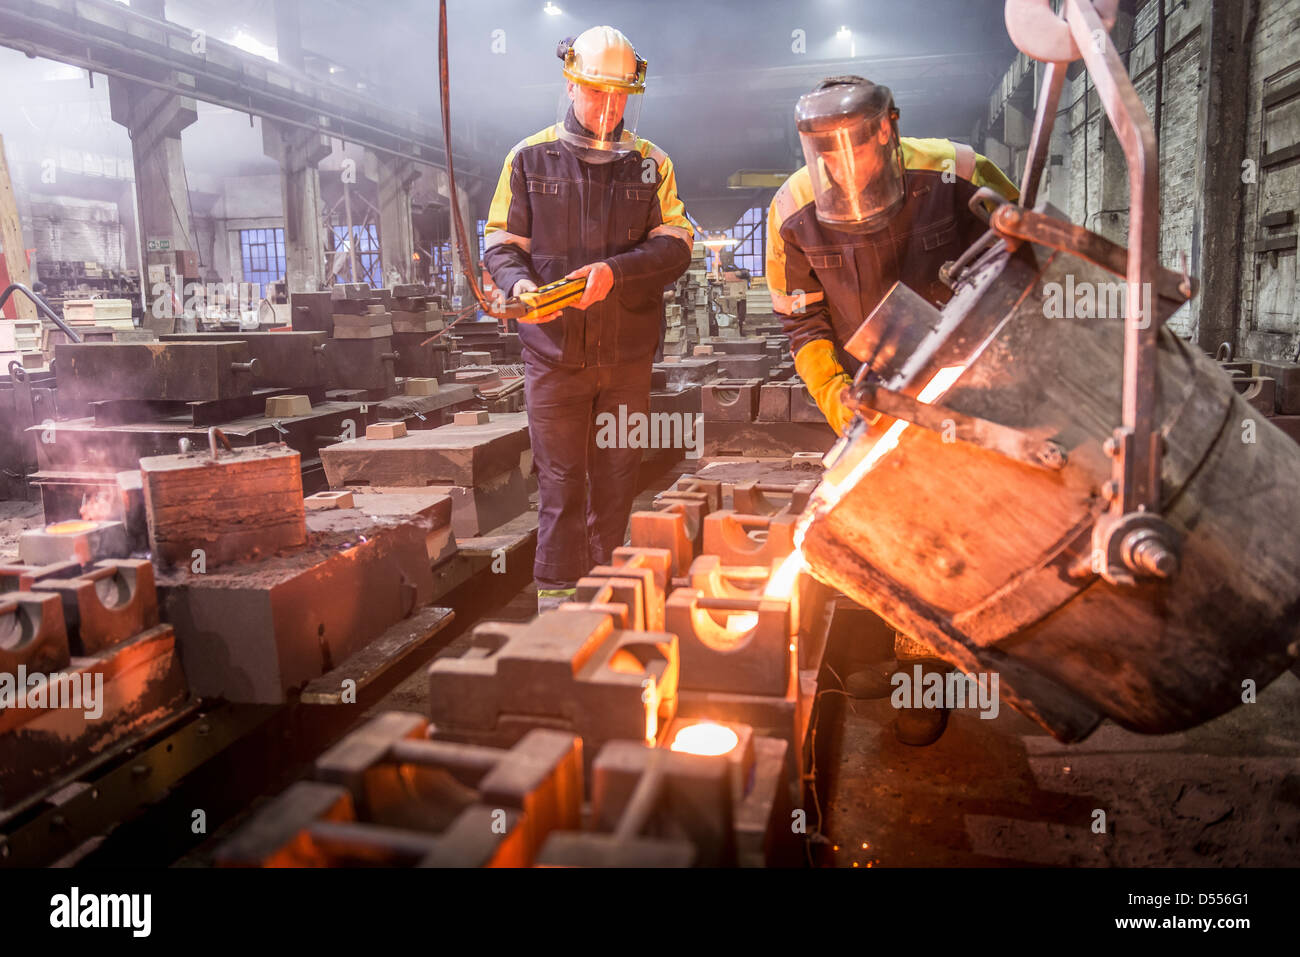 Workers pouring molten metal in foundry - Stock Image